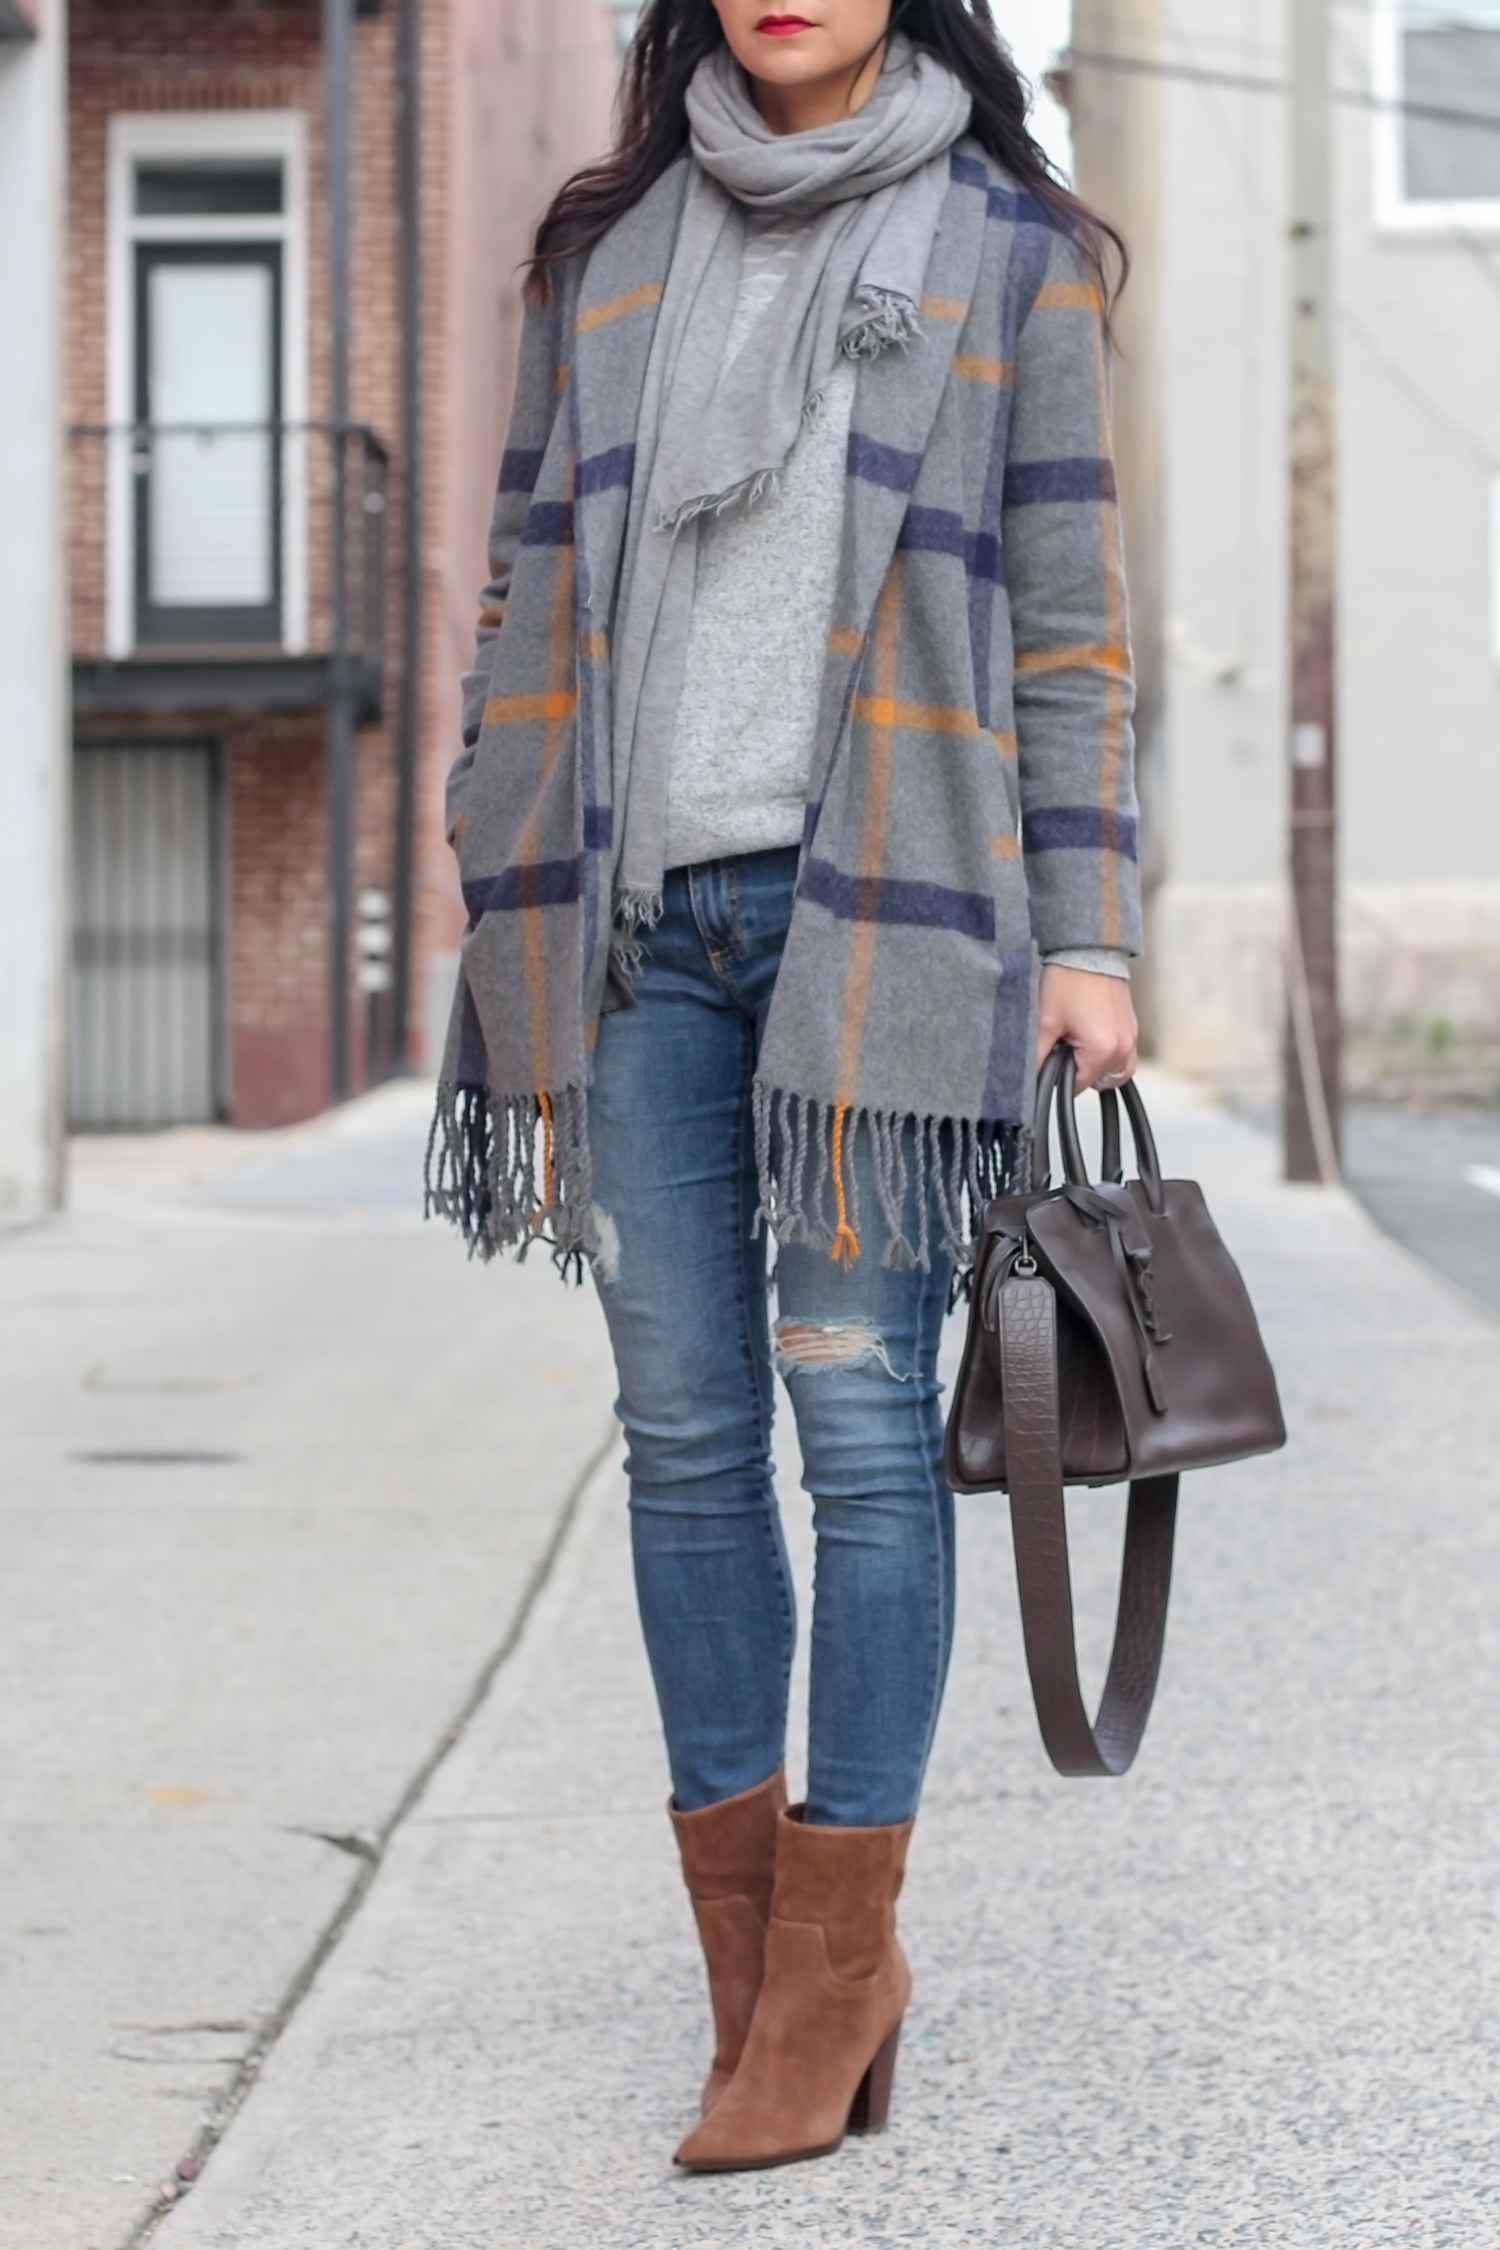 Plaid Coat; YSL Downtown Cabas Bag, Cute Fall Style, Winter Plaid Coat